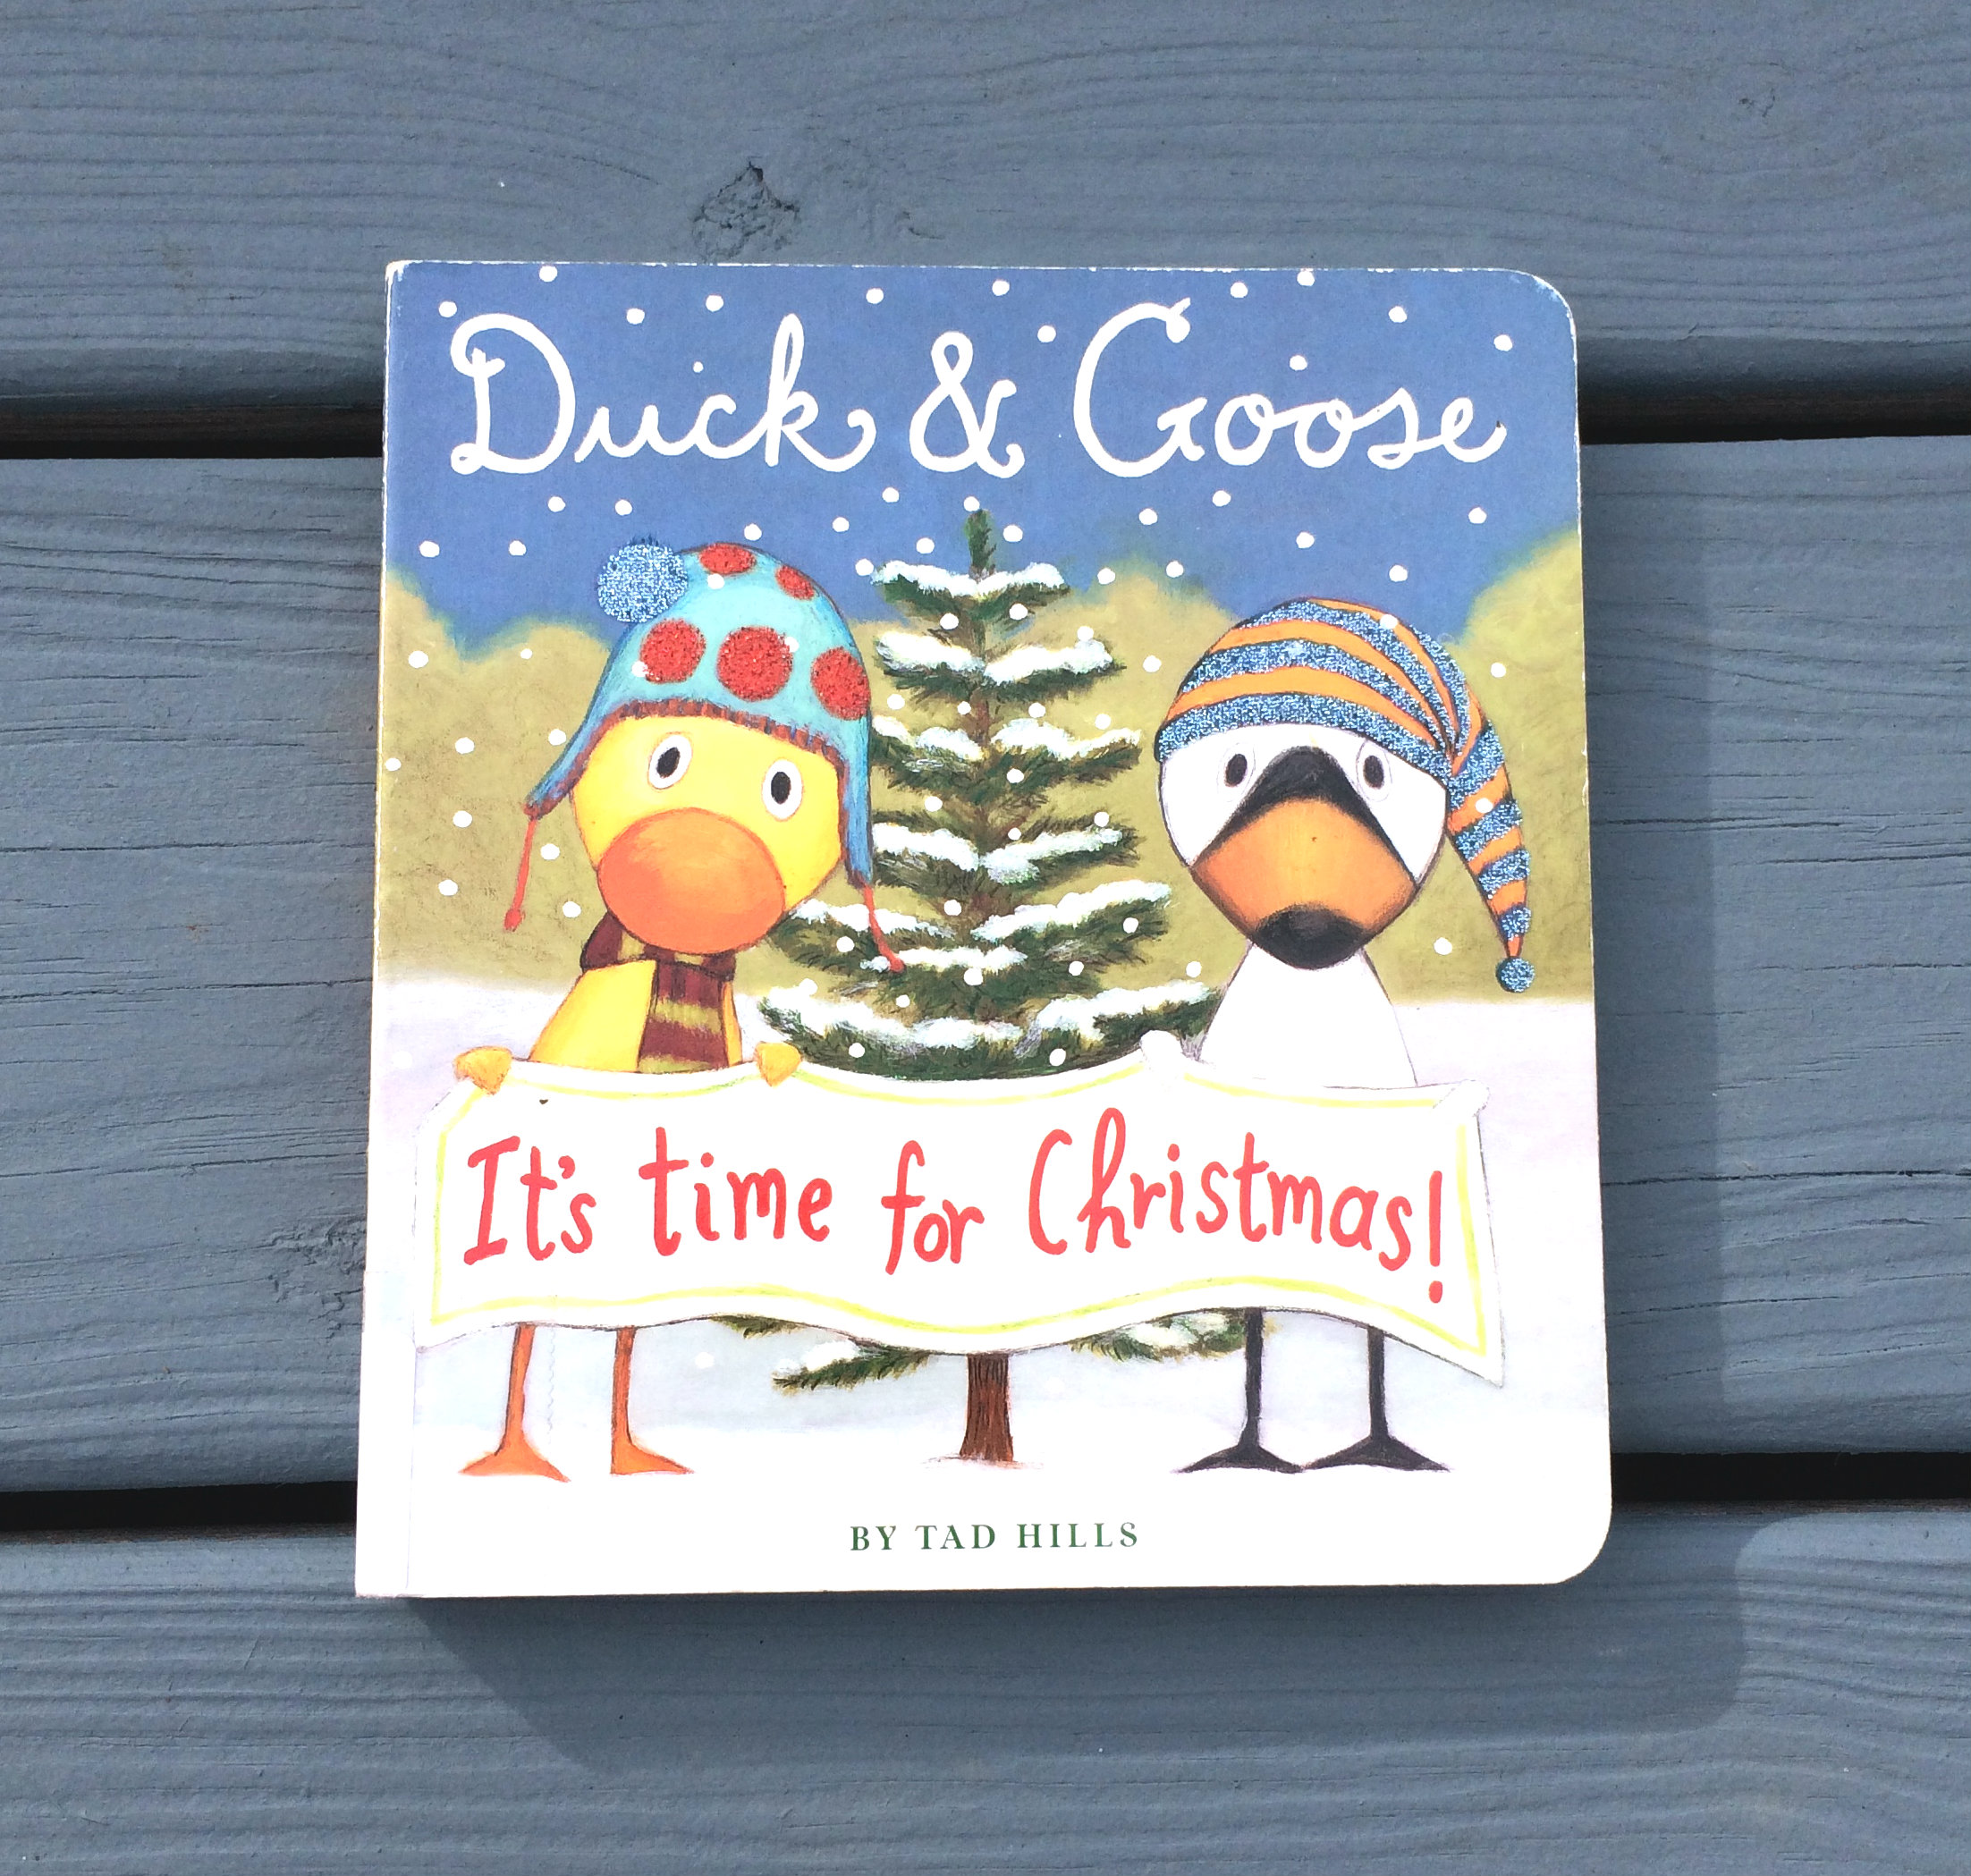 Duck and Goose Its Time for Christmas edited.jpg